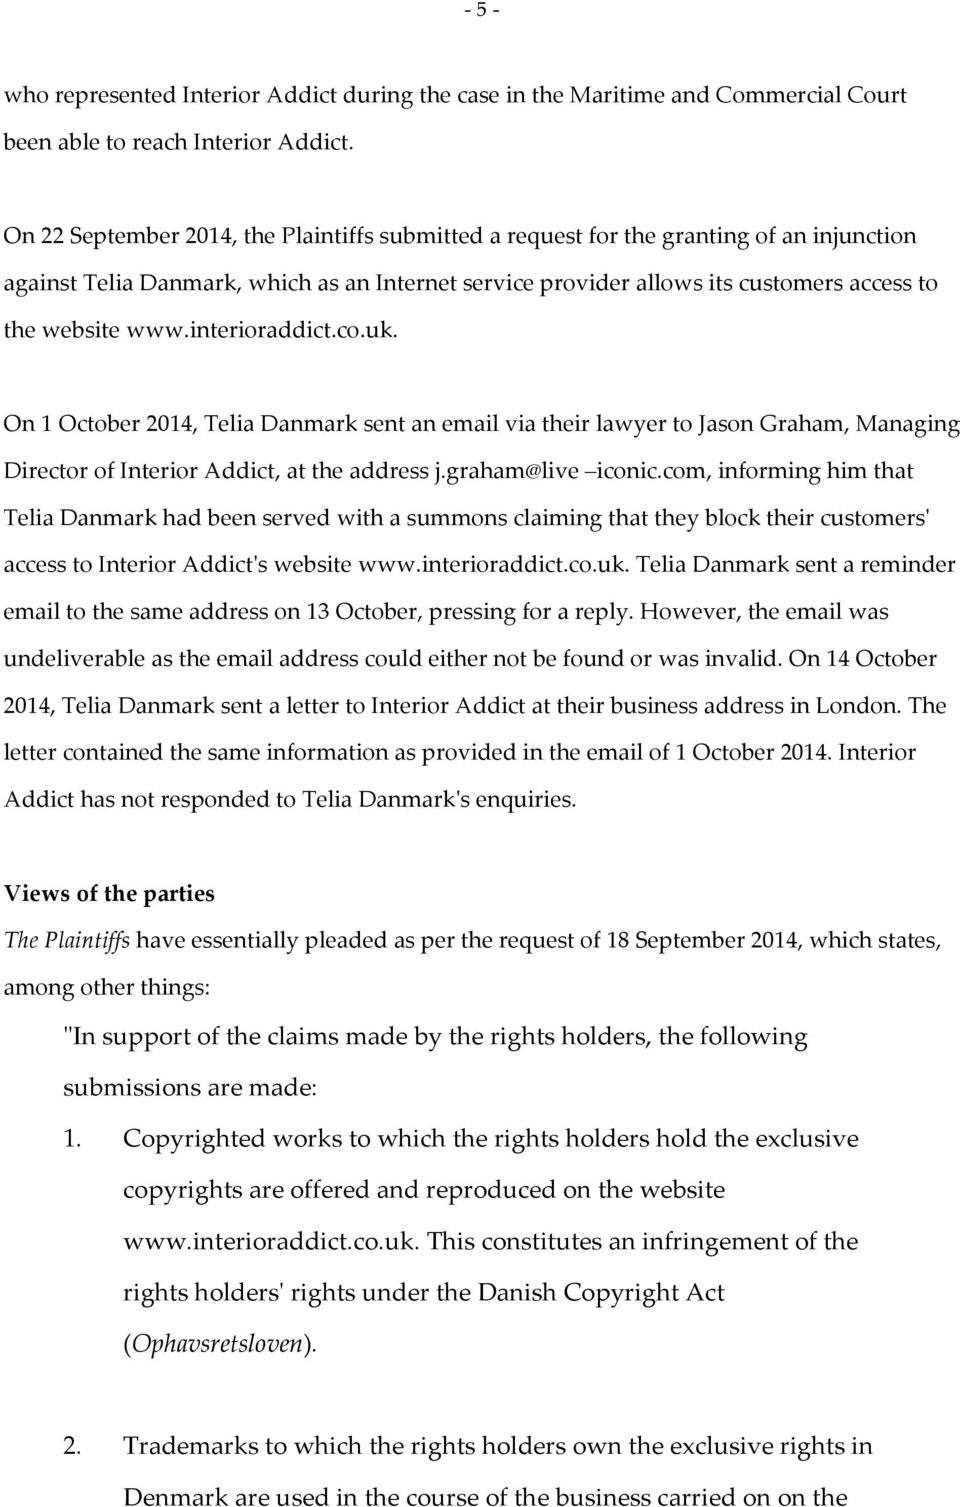 interioraddict.co.uk. On 1 October 2014, Telia Danmark sent an email via their lawyer to Jason Graham, Managing Director of Interior Addict, at the address j.graham@live iconic.